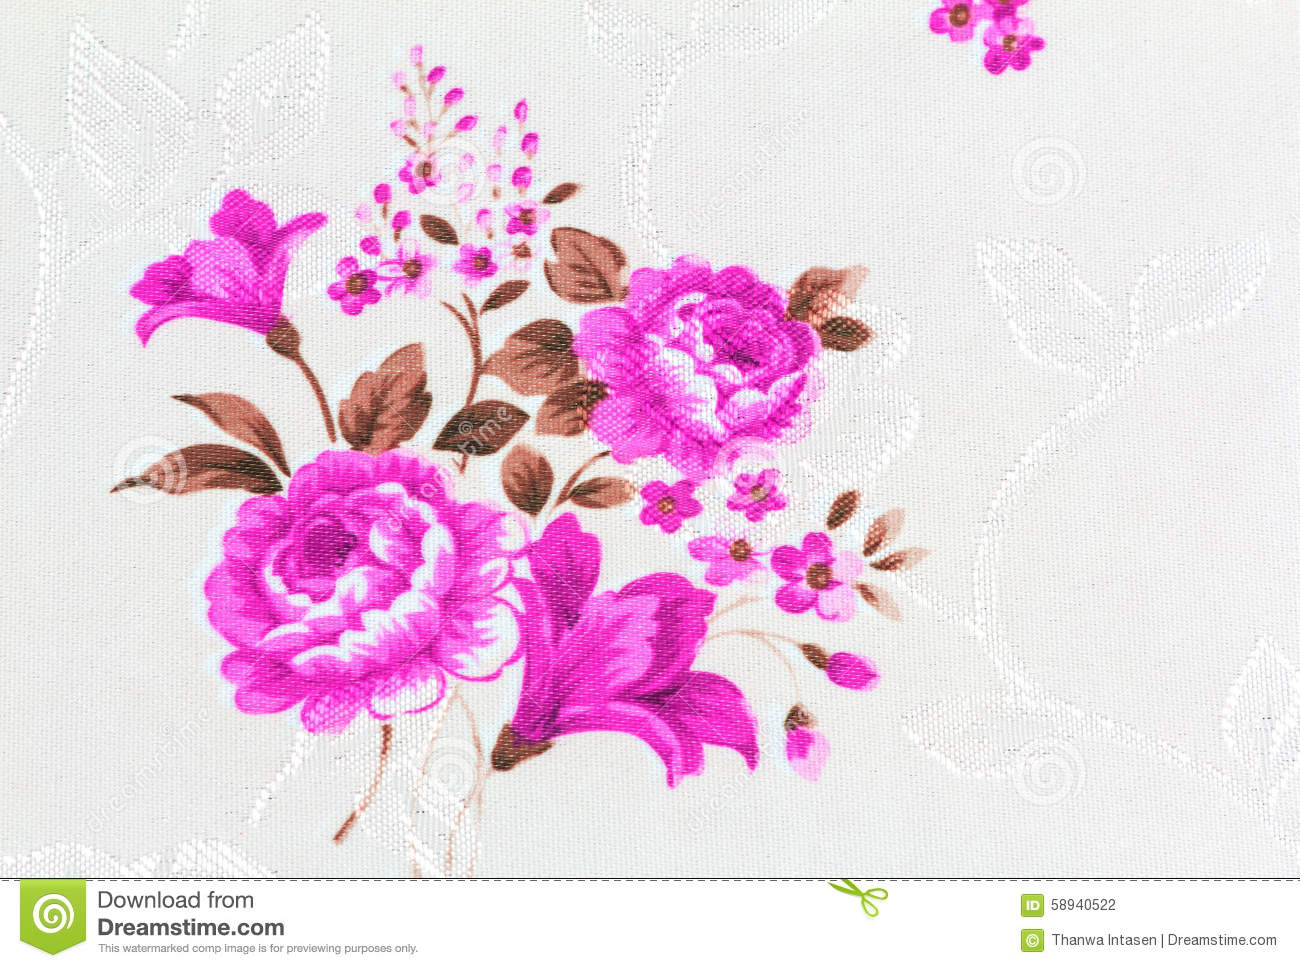 Beautiful Rose Flower Batik Fabric Photos Free Royalty Free Stock Photos From Dreamstime